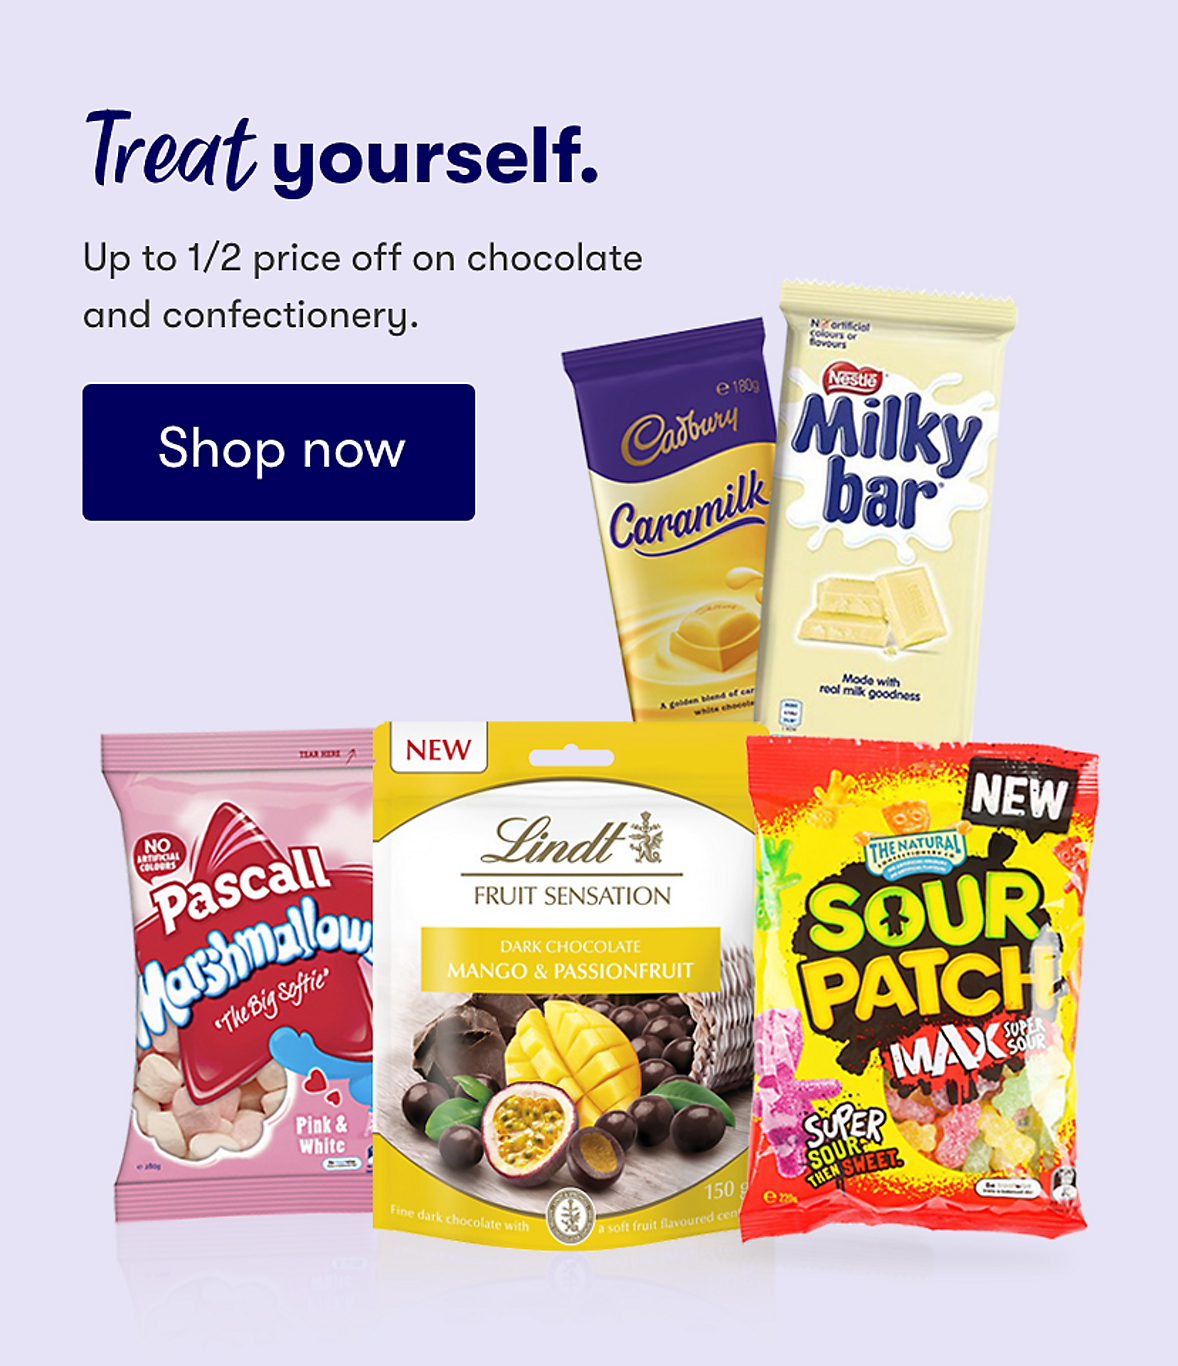 Treat yourself up to 1/2 price off on chocolate and confectionery